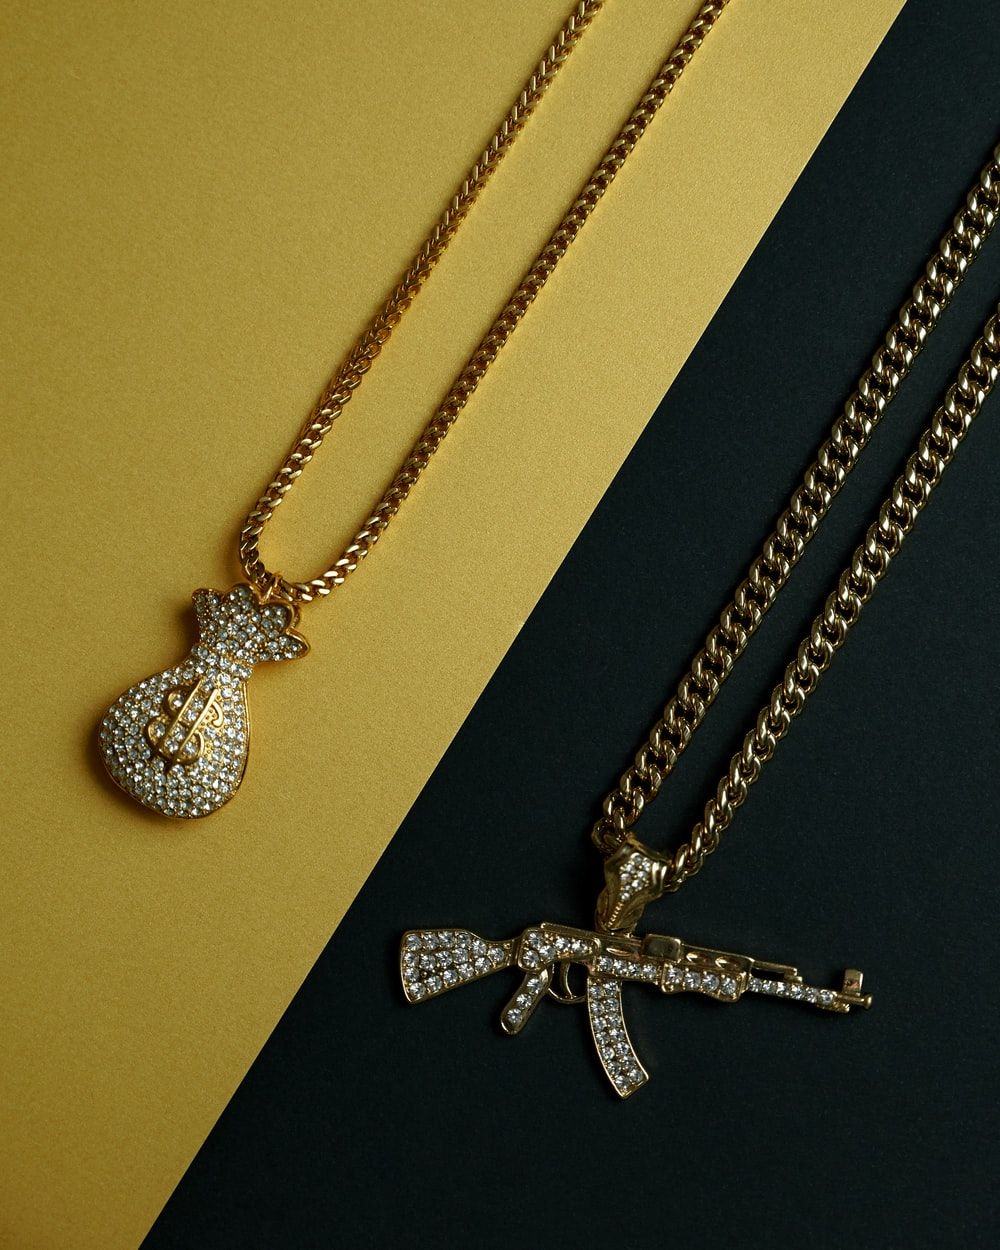 silver and diamond studded cross pendant necklace